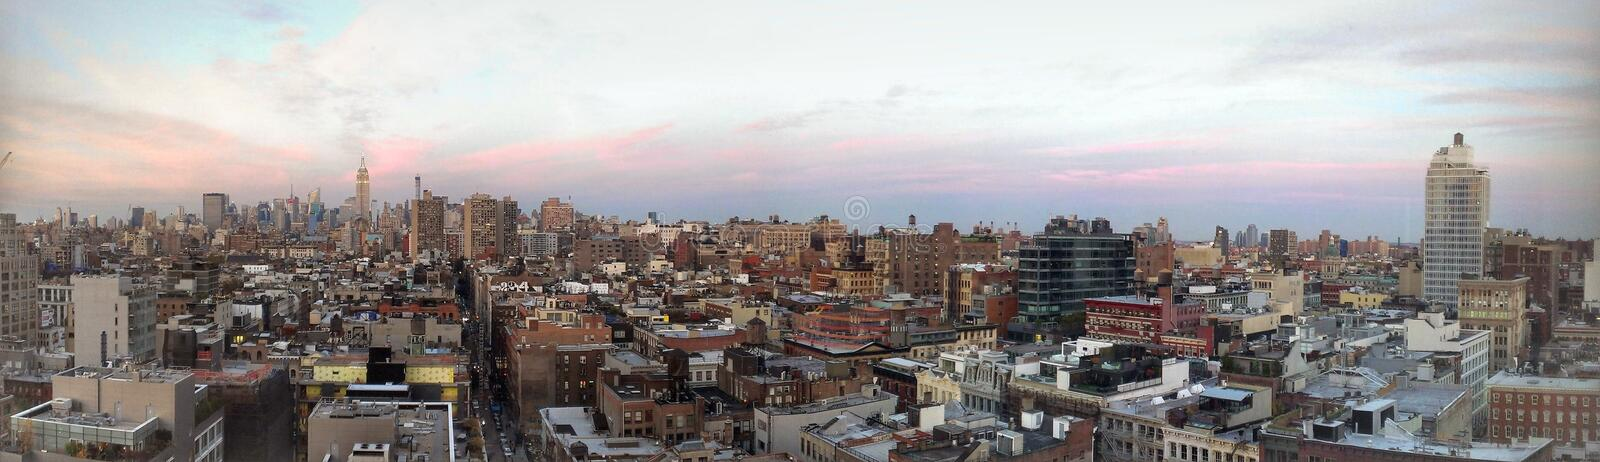 New- YorkSkyline-Ansicht stockfoto